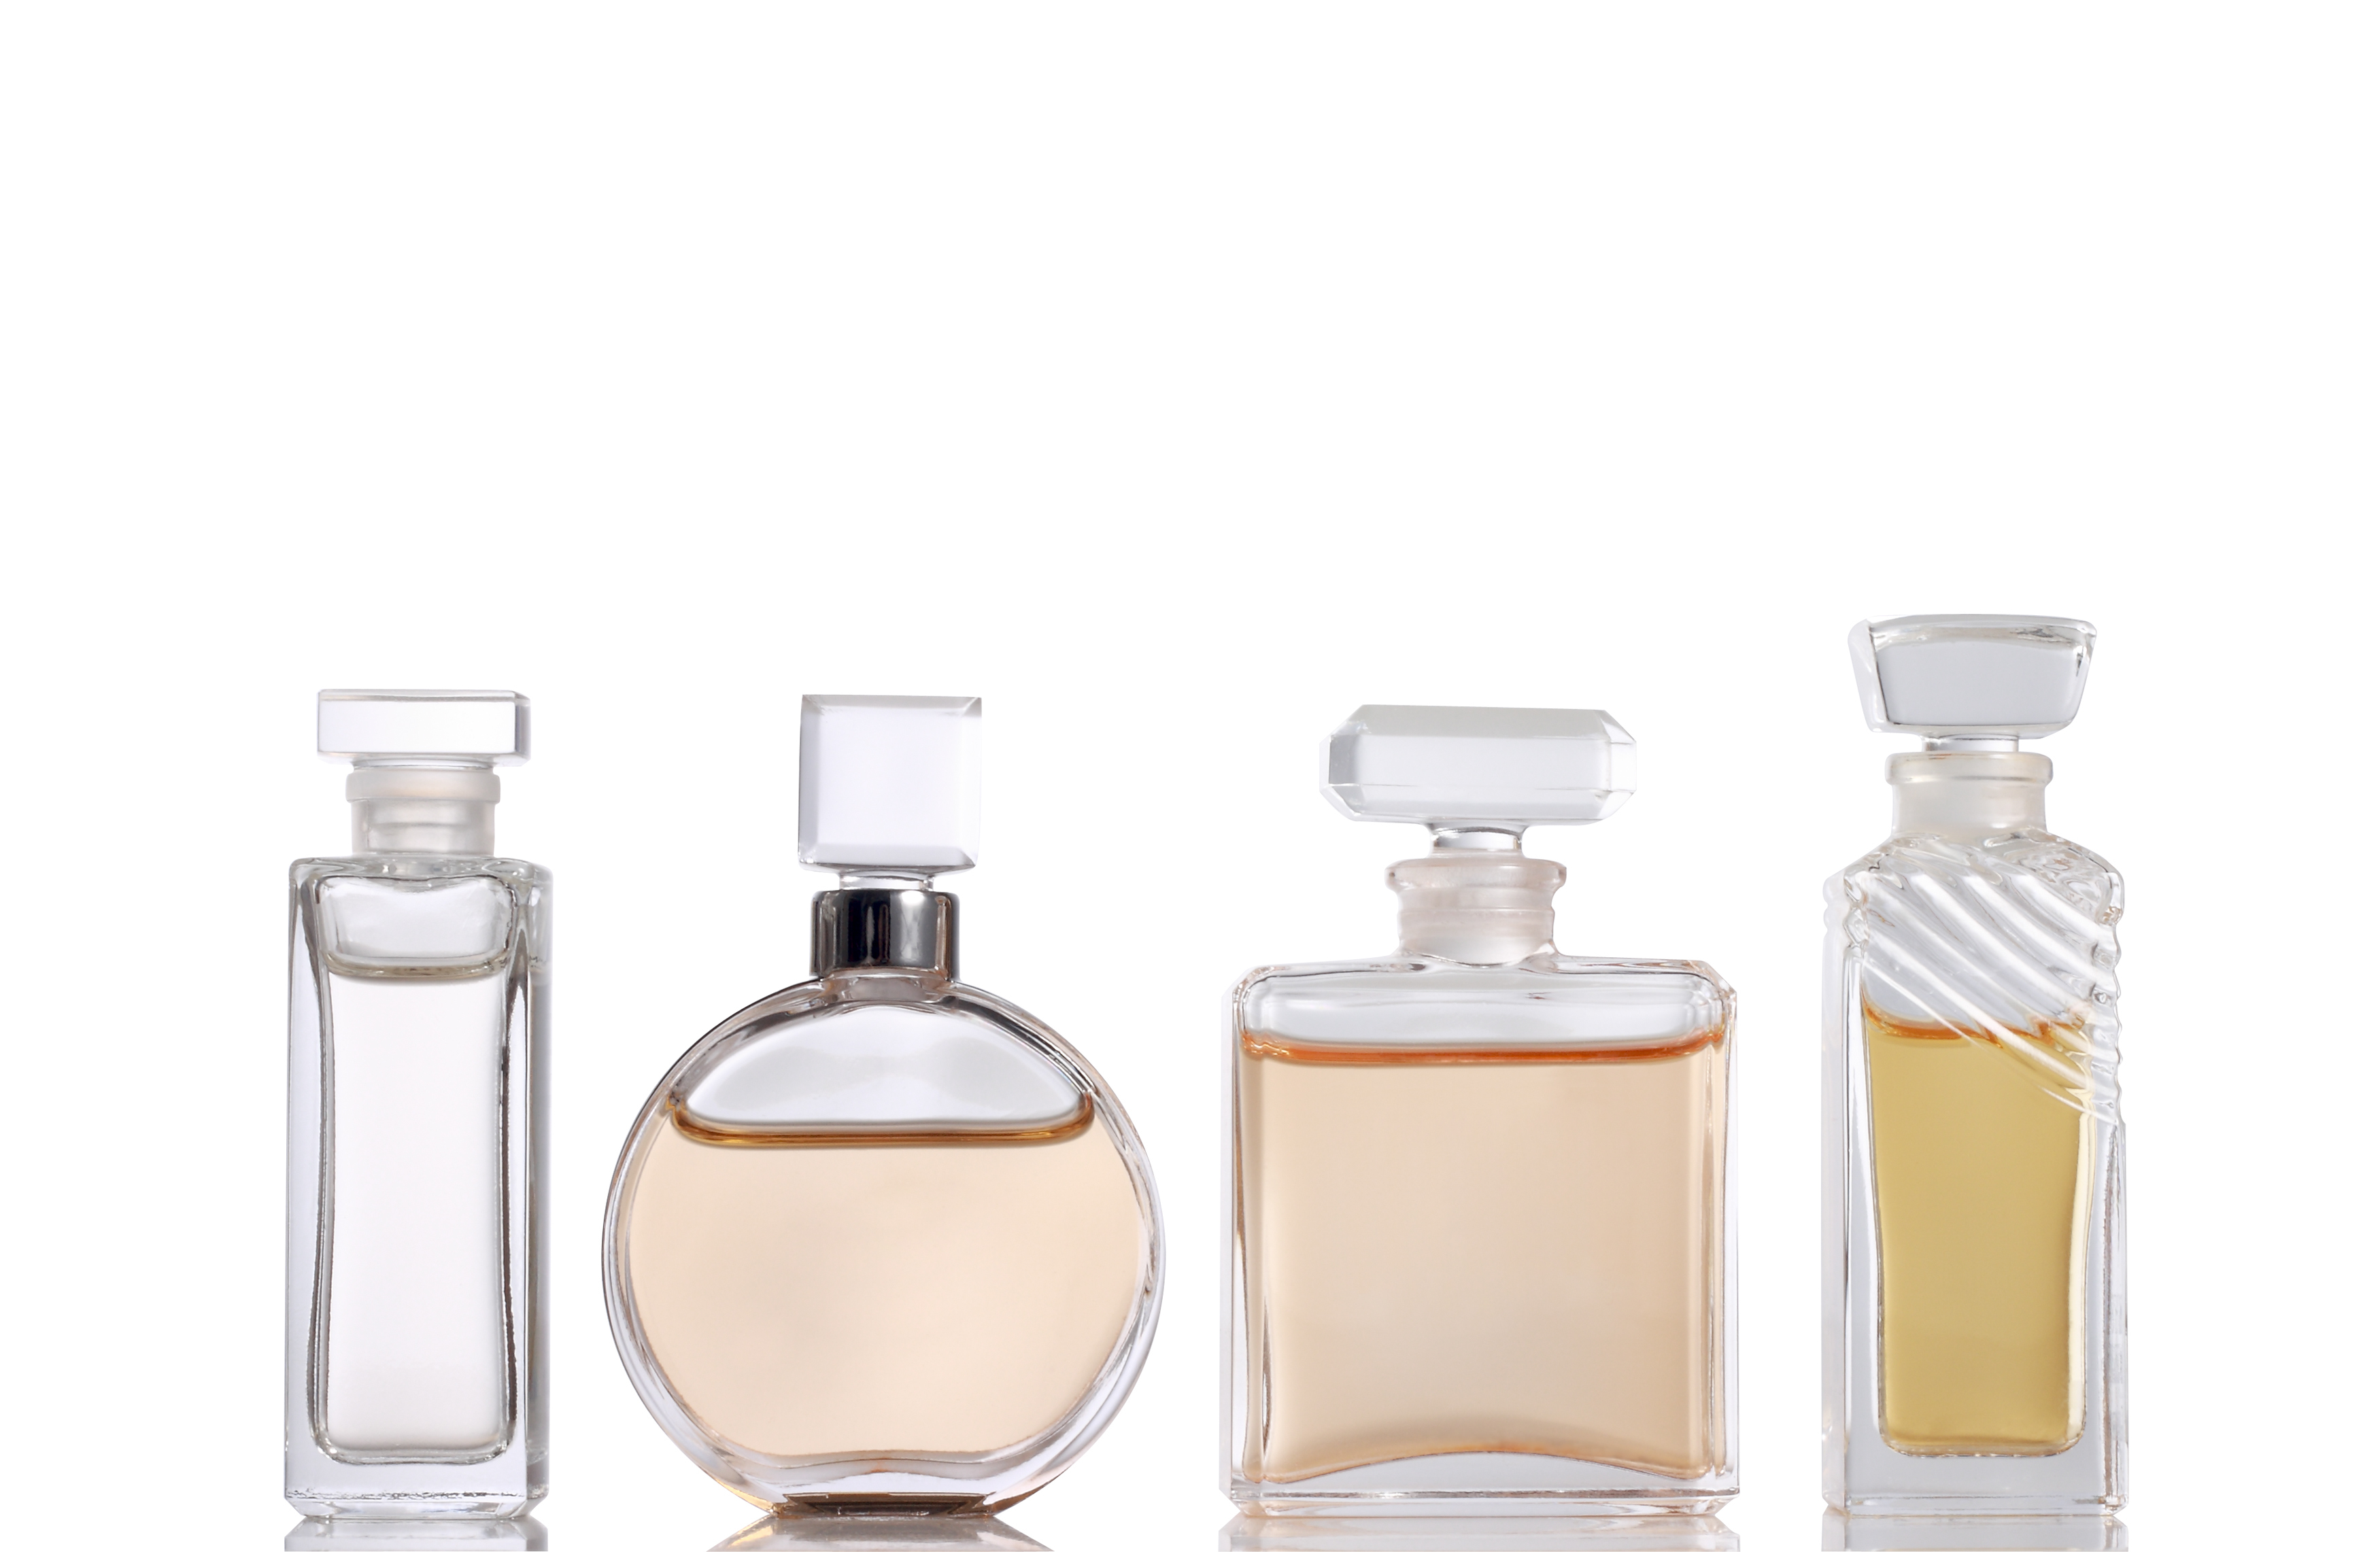 Natural fragrances that can change our mood